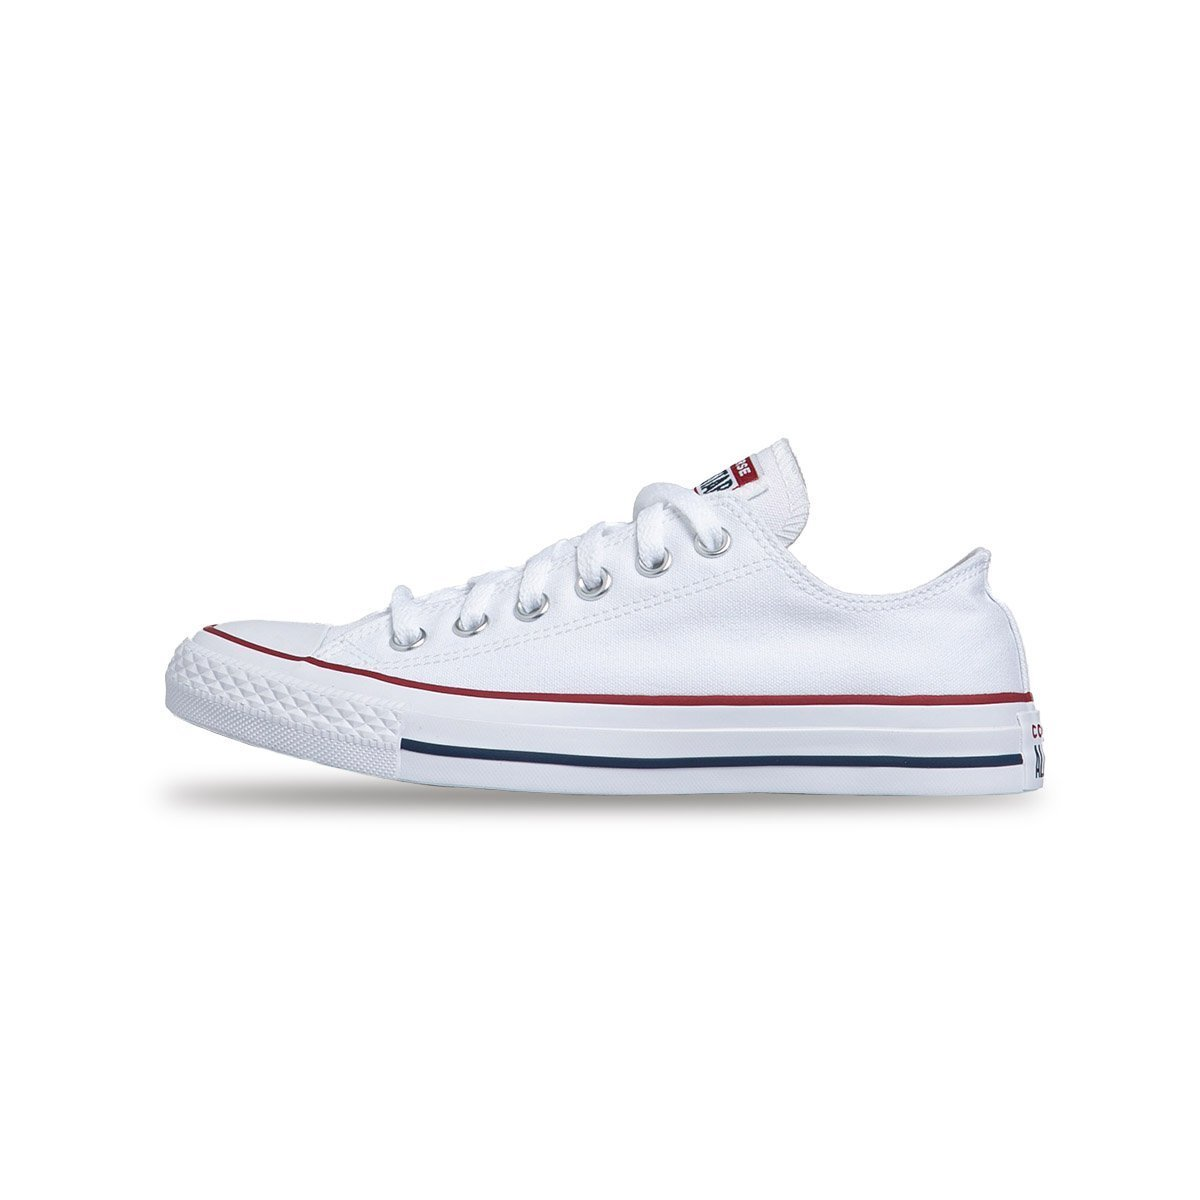 Sneakers buty damskie Converse Chuck Taylor All Star OX białe (M7652C)